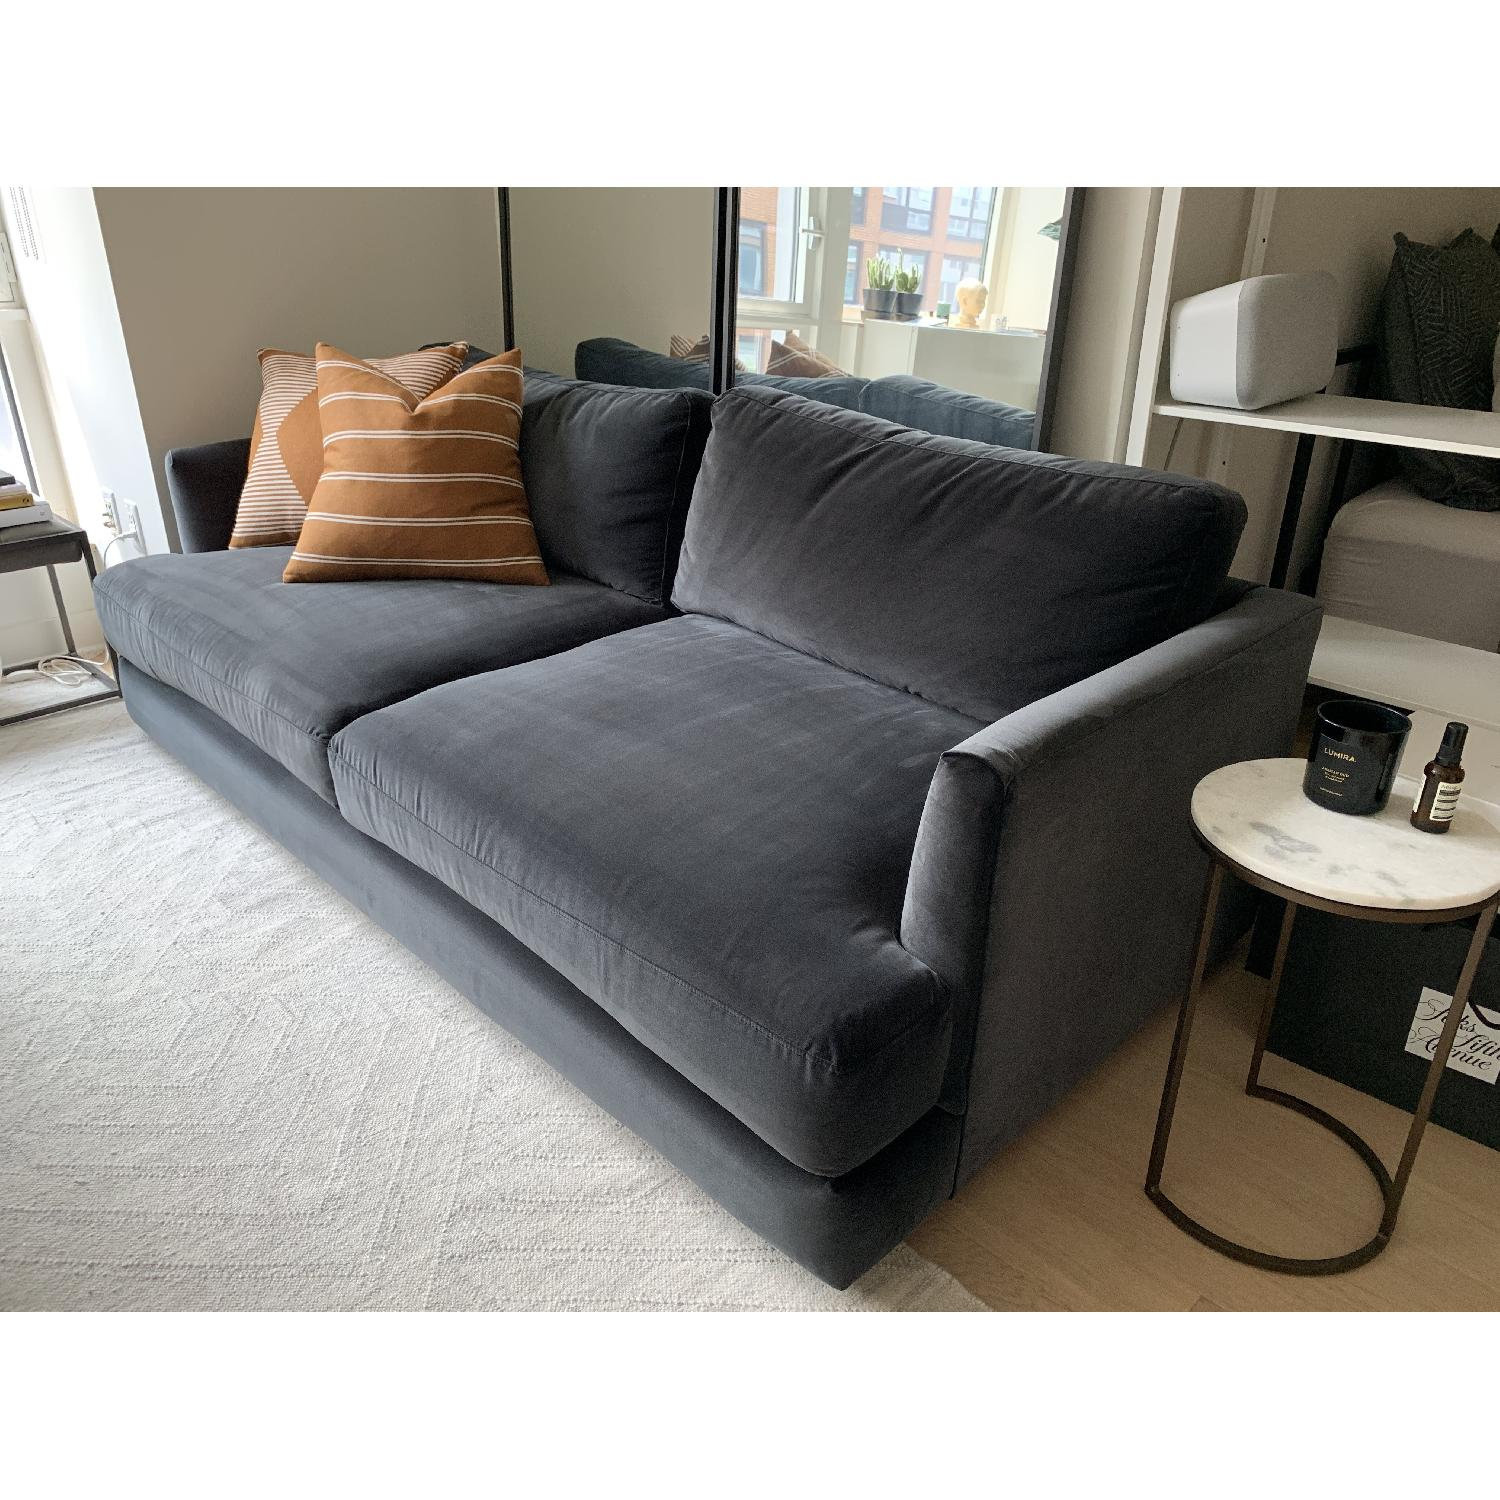 West Elm Haven Sofa in Iron Astor Velvet - image-6